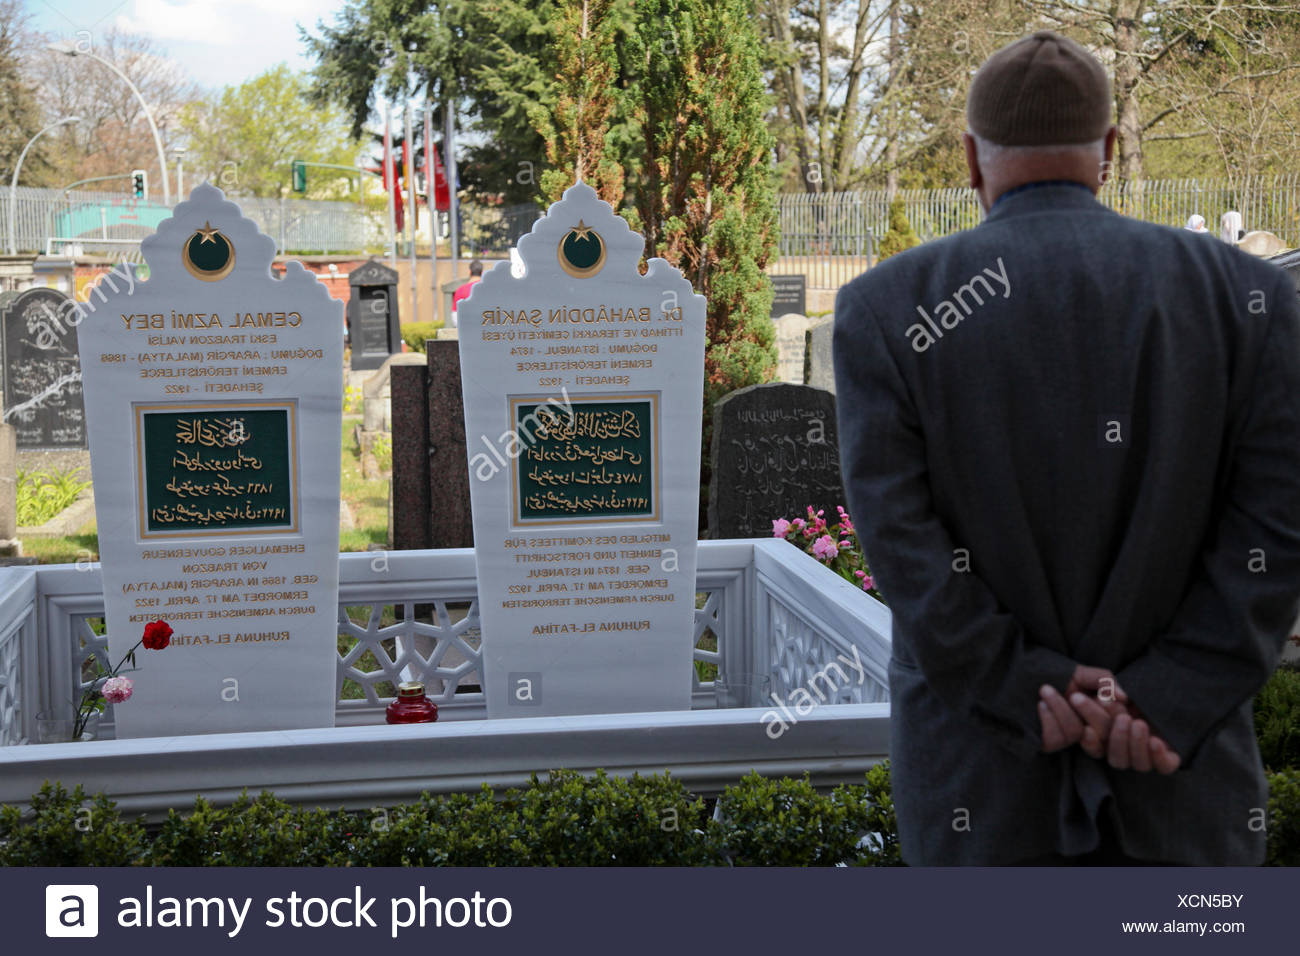 Controversial grave stone-renewal at the Sehitlik Mosque in Berlin-Neukoelln for the Turkish politicians Behaeddin Shakir Bey - Stock Image